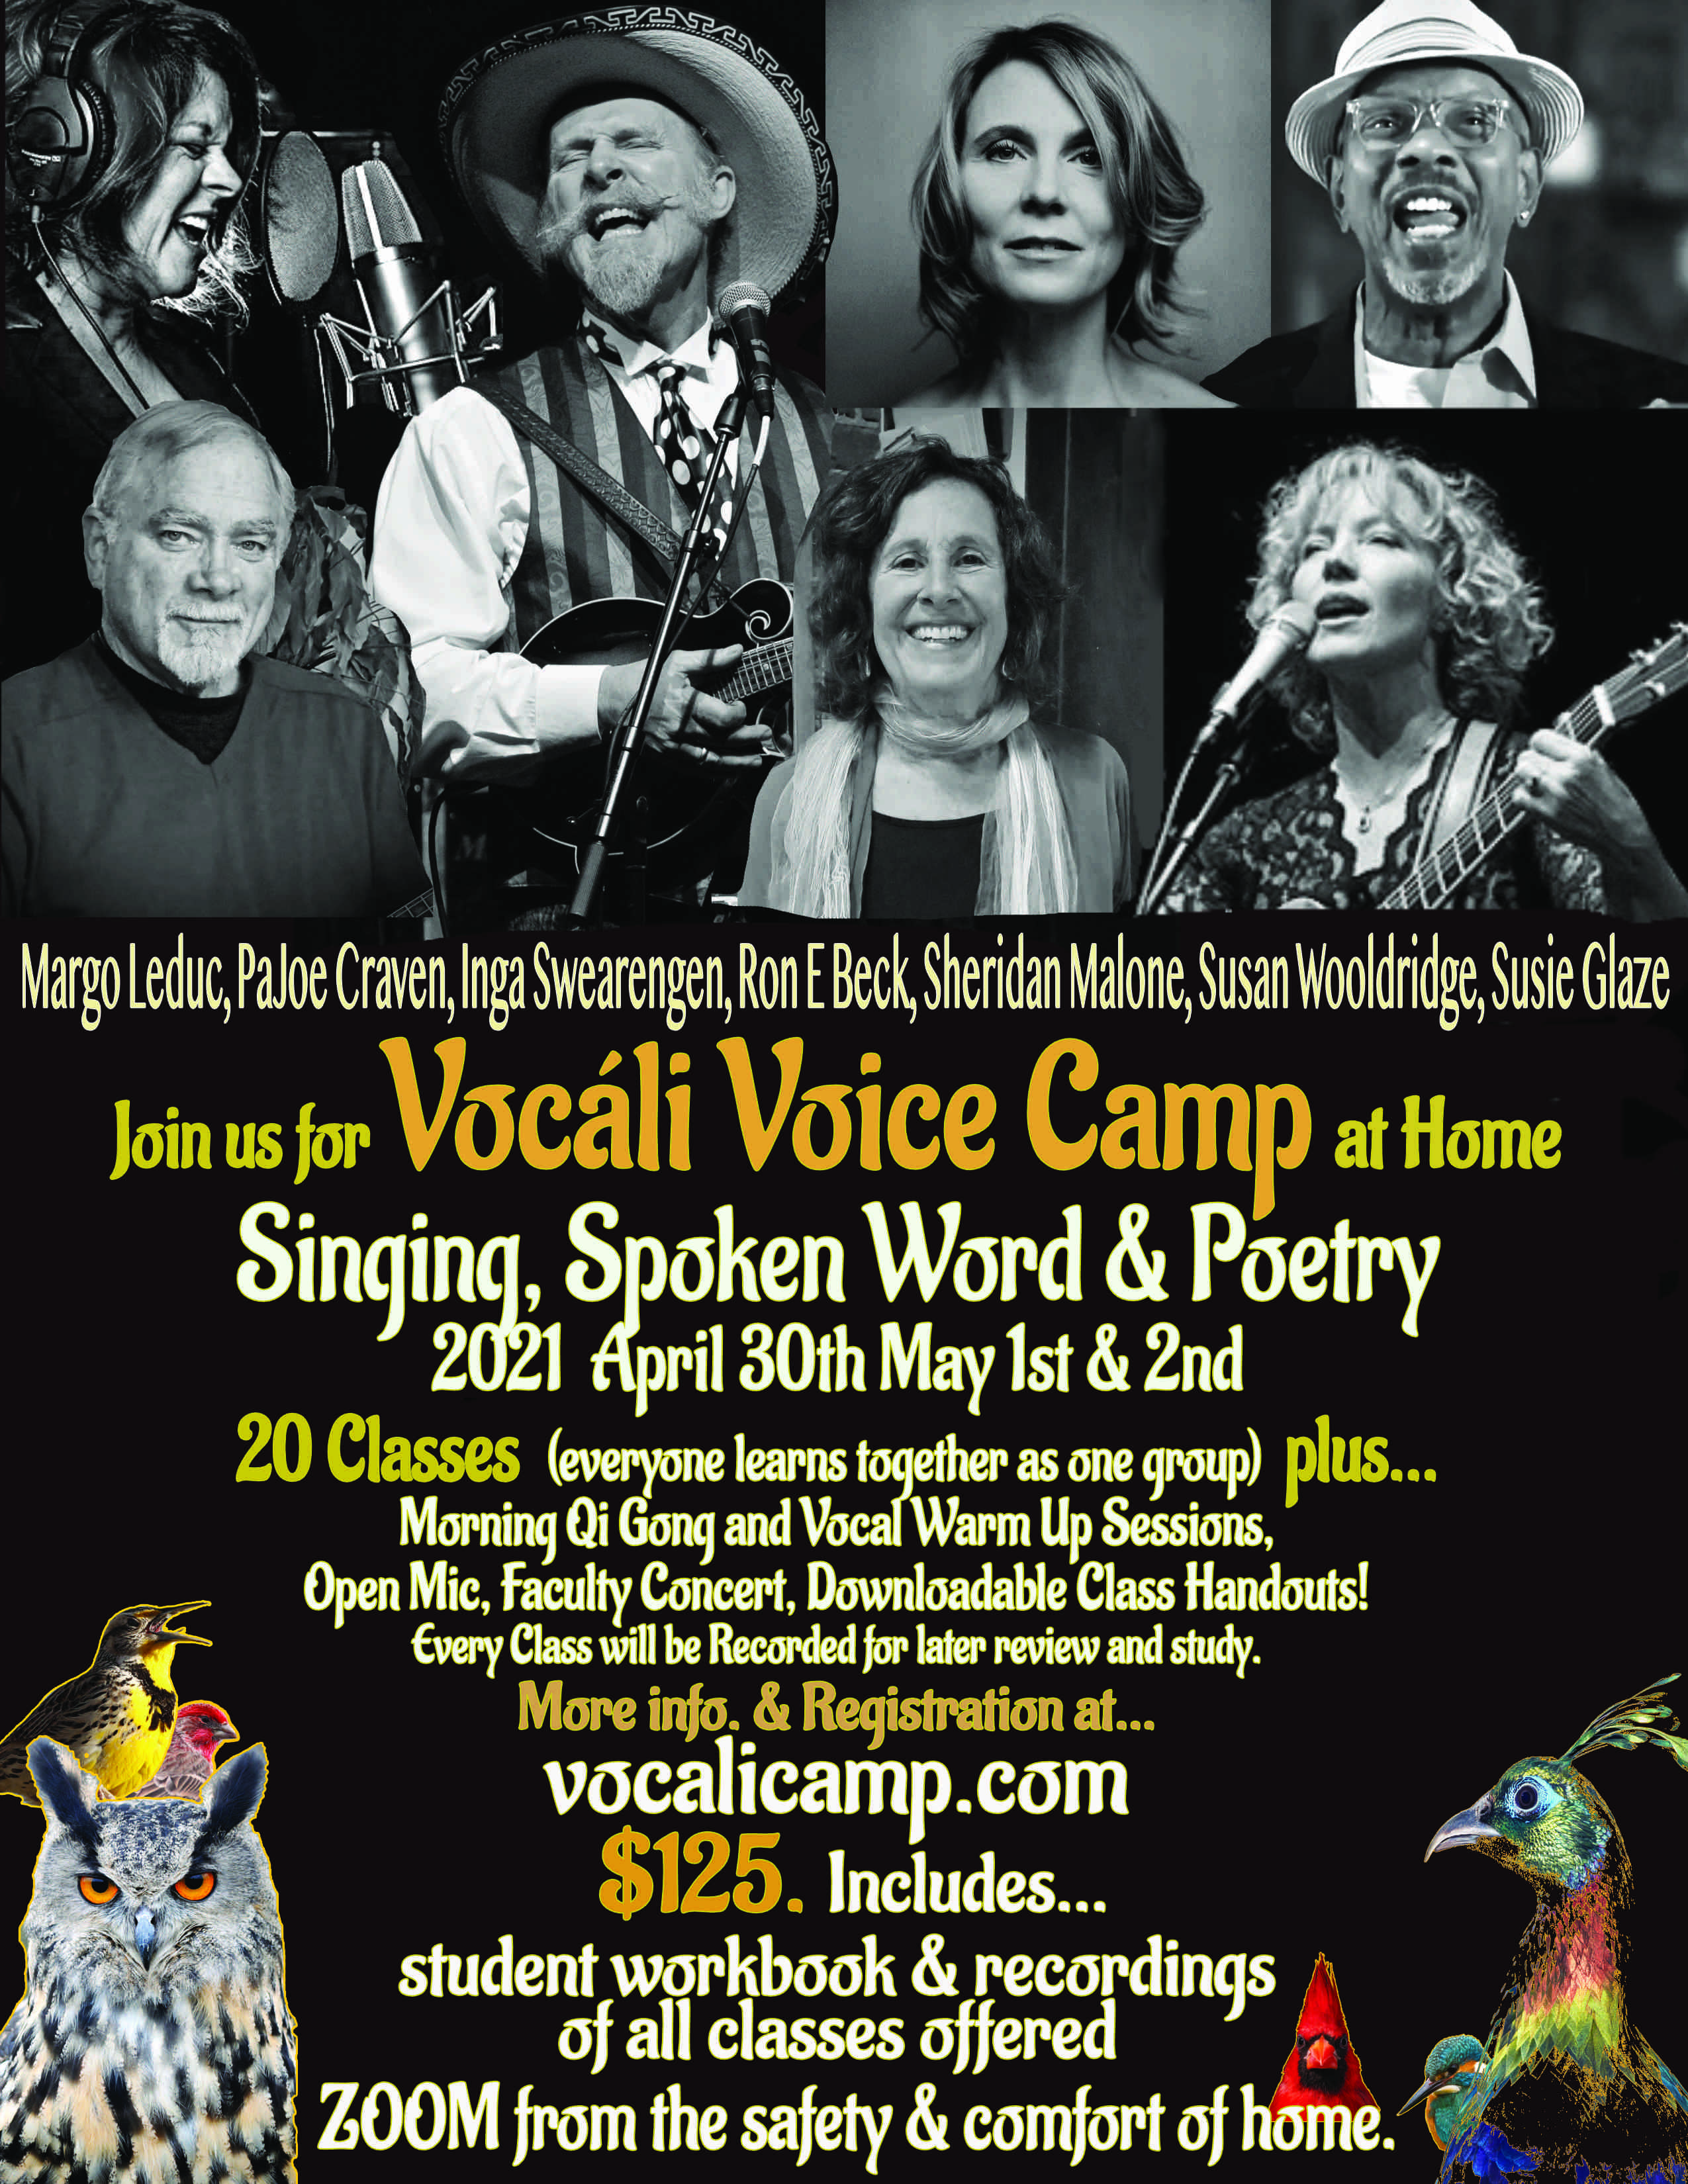 The Woodshed Sessions Return March 28 on Facebook LIVE!                 Susie teaches at Vocáli Voice Camp April 30-May 2!